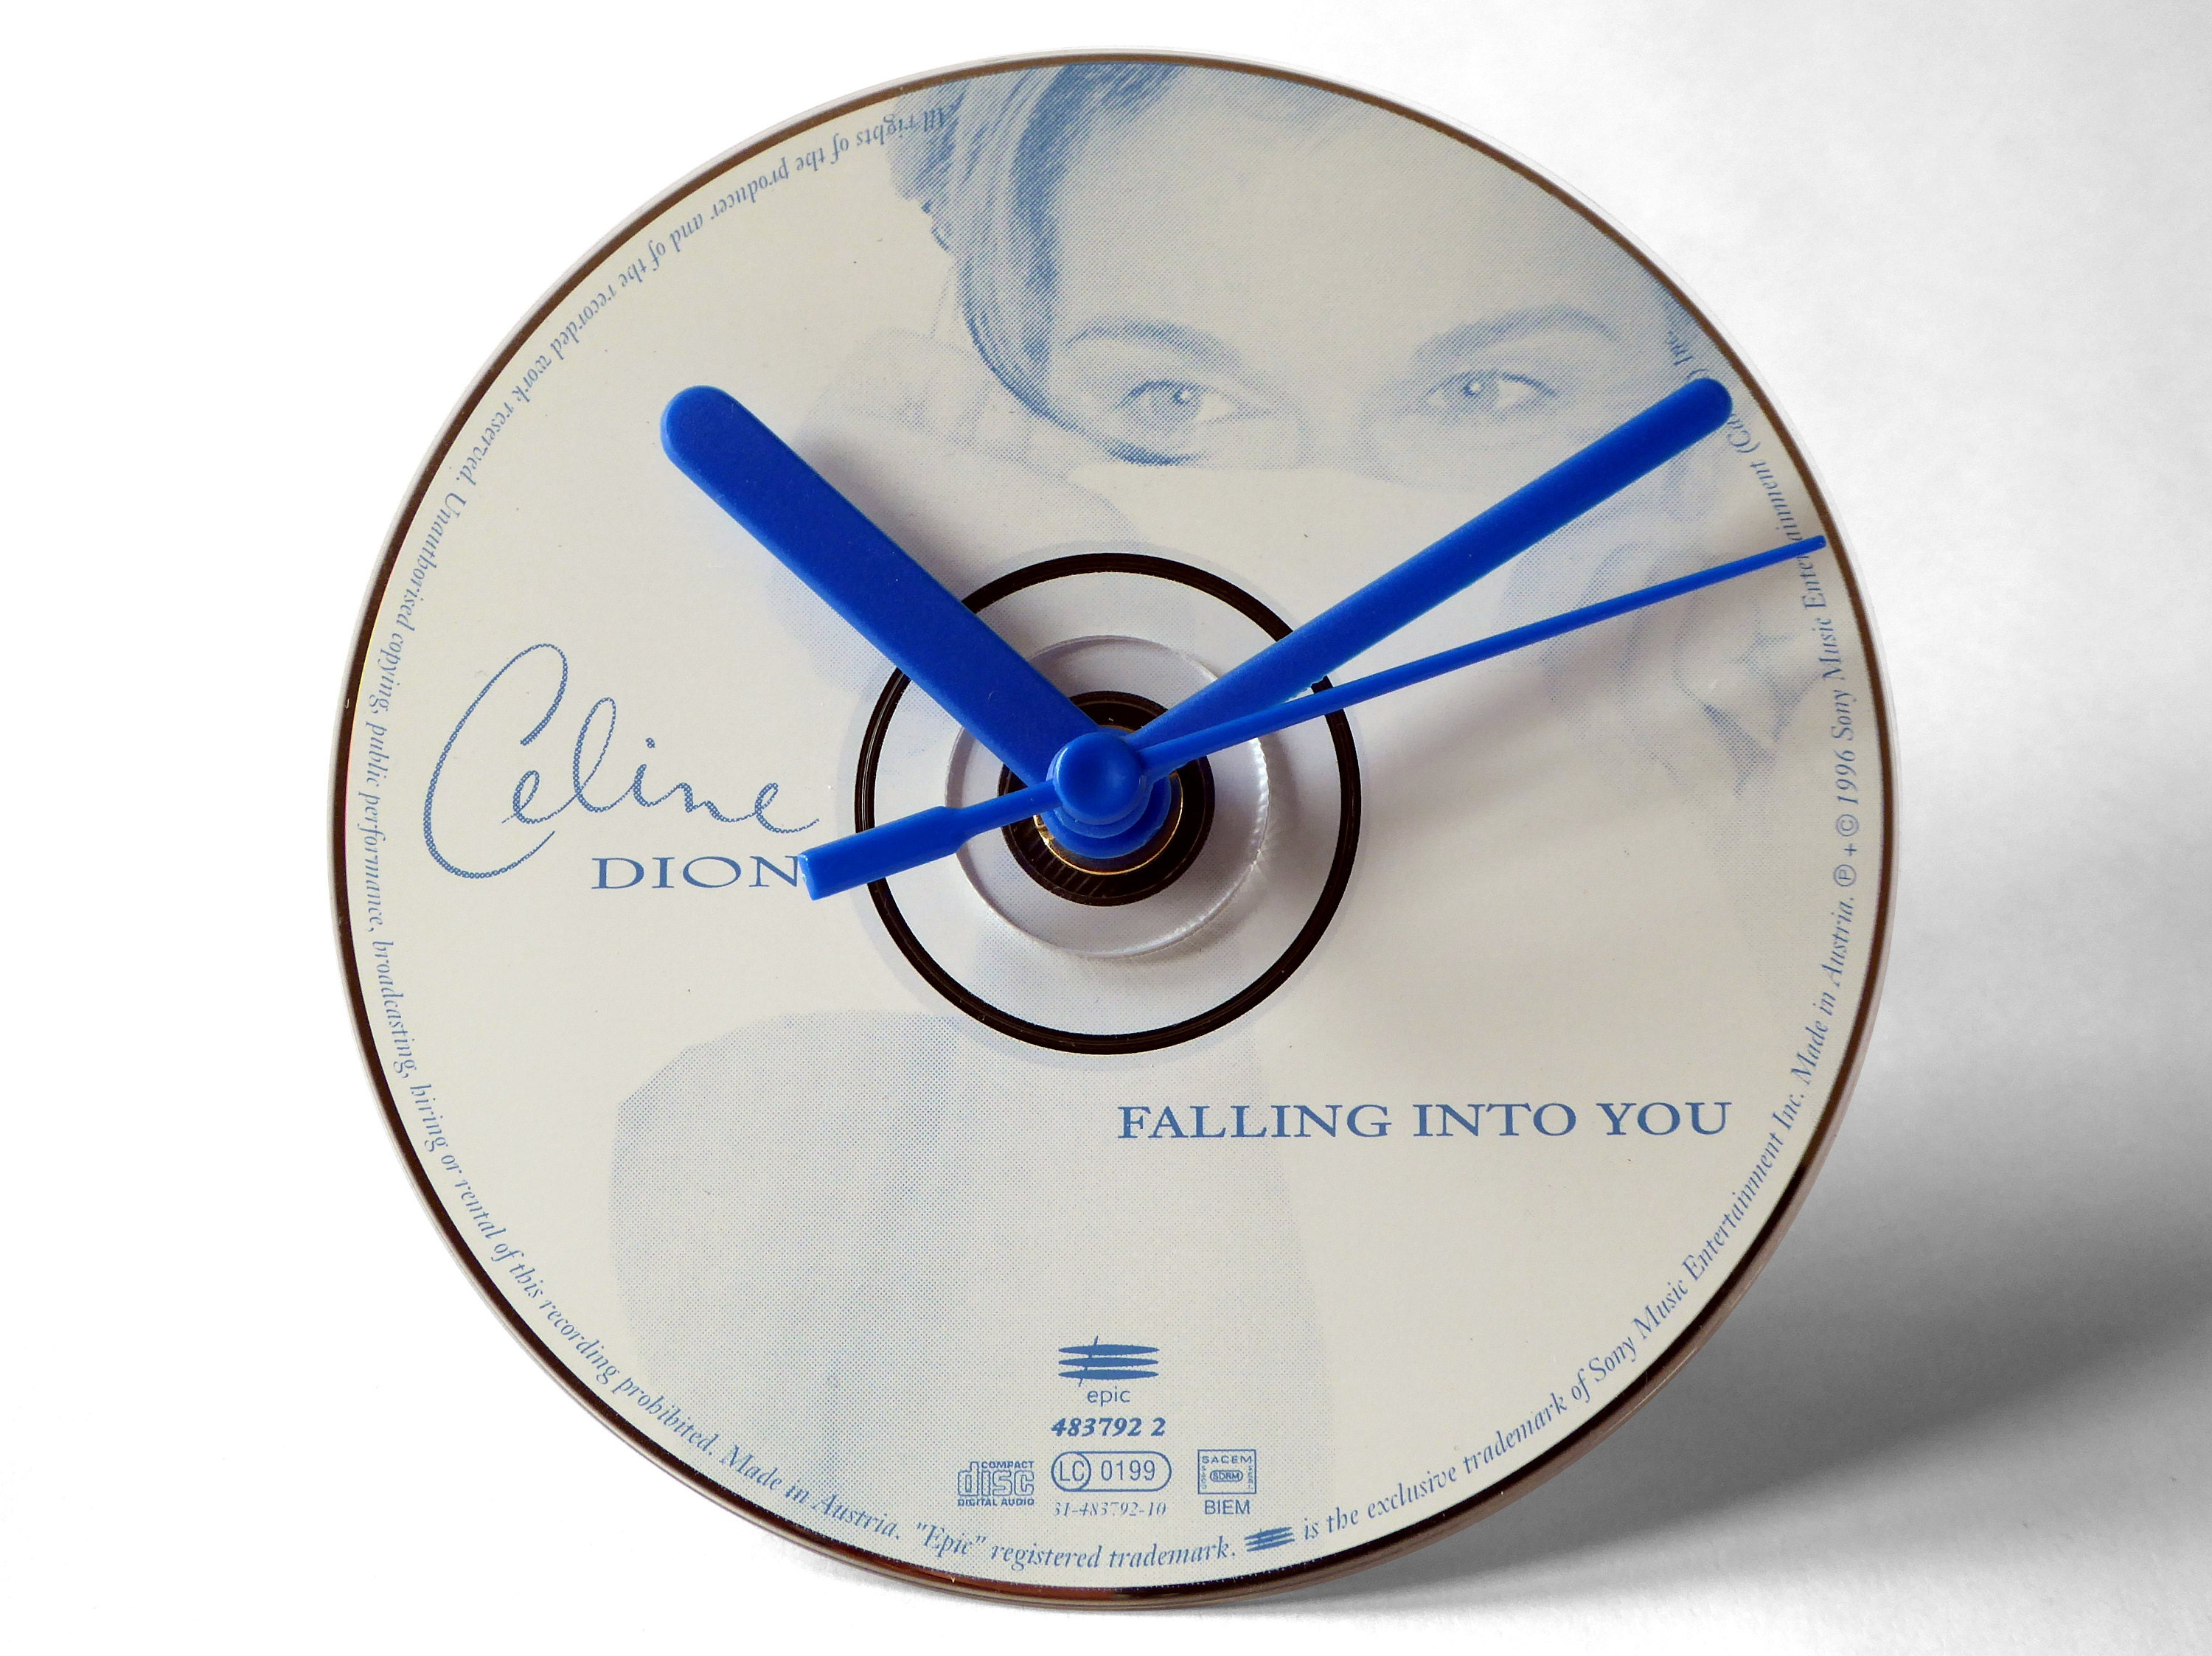 Celine Dion Falling Into You CD Clock and Keyring Gift Set